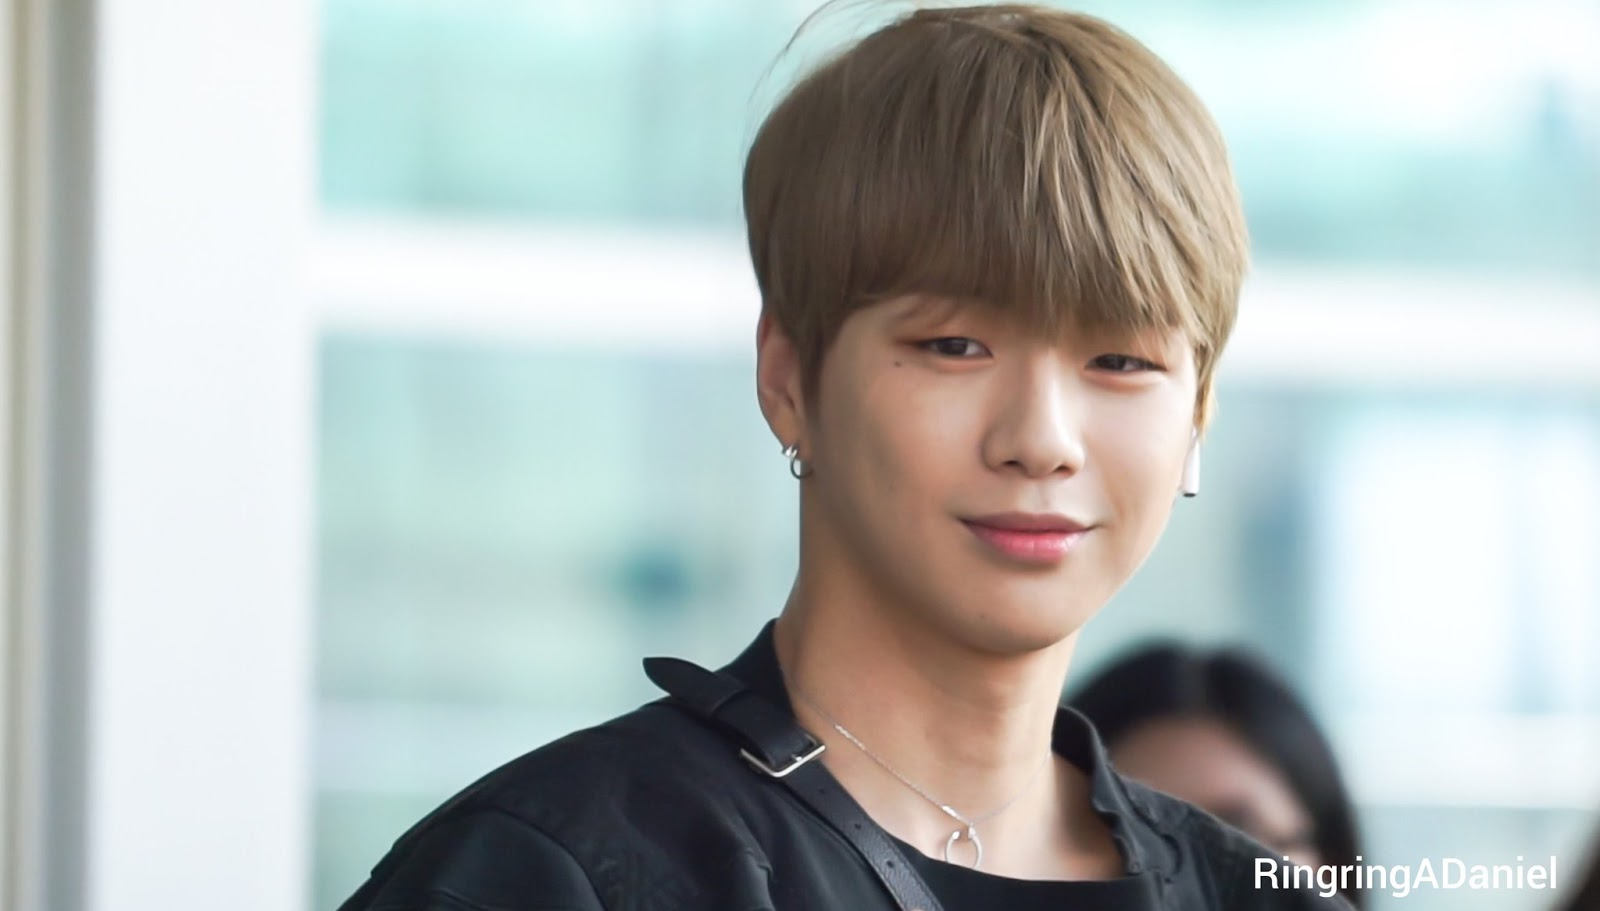 kang daniel dating news 7